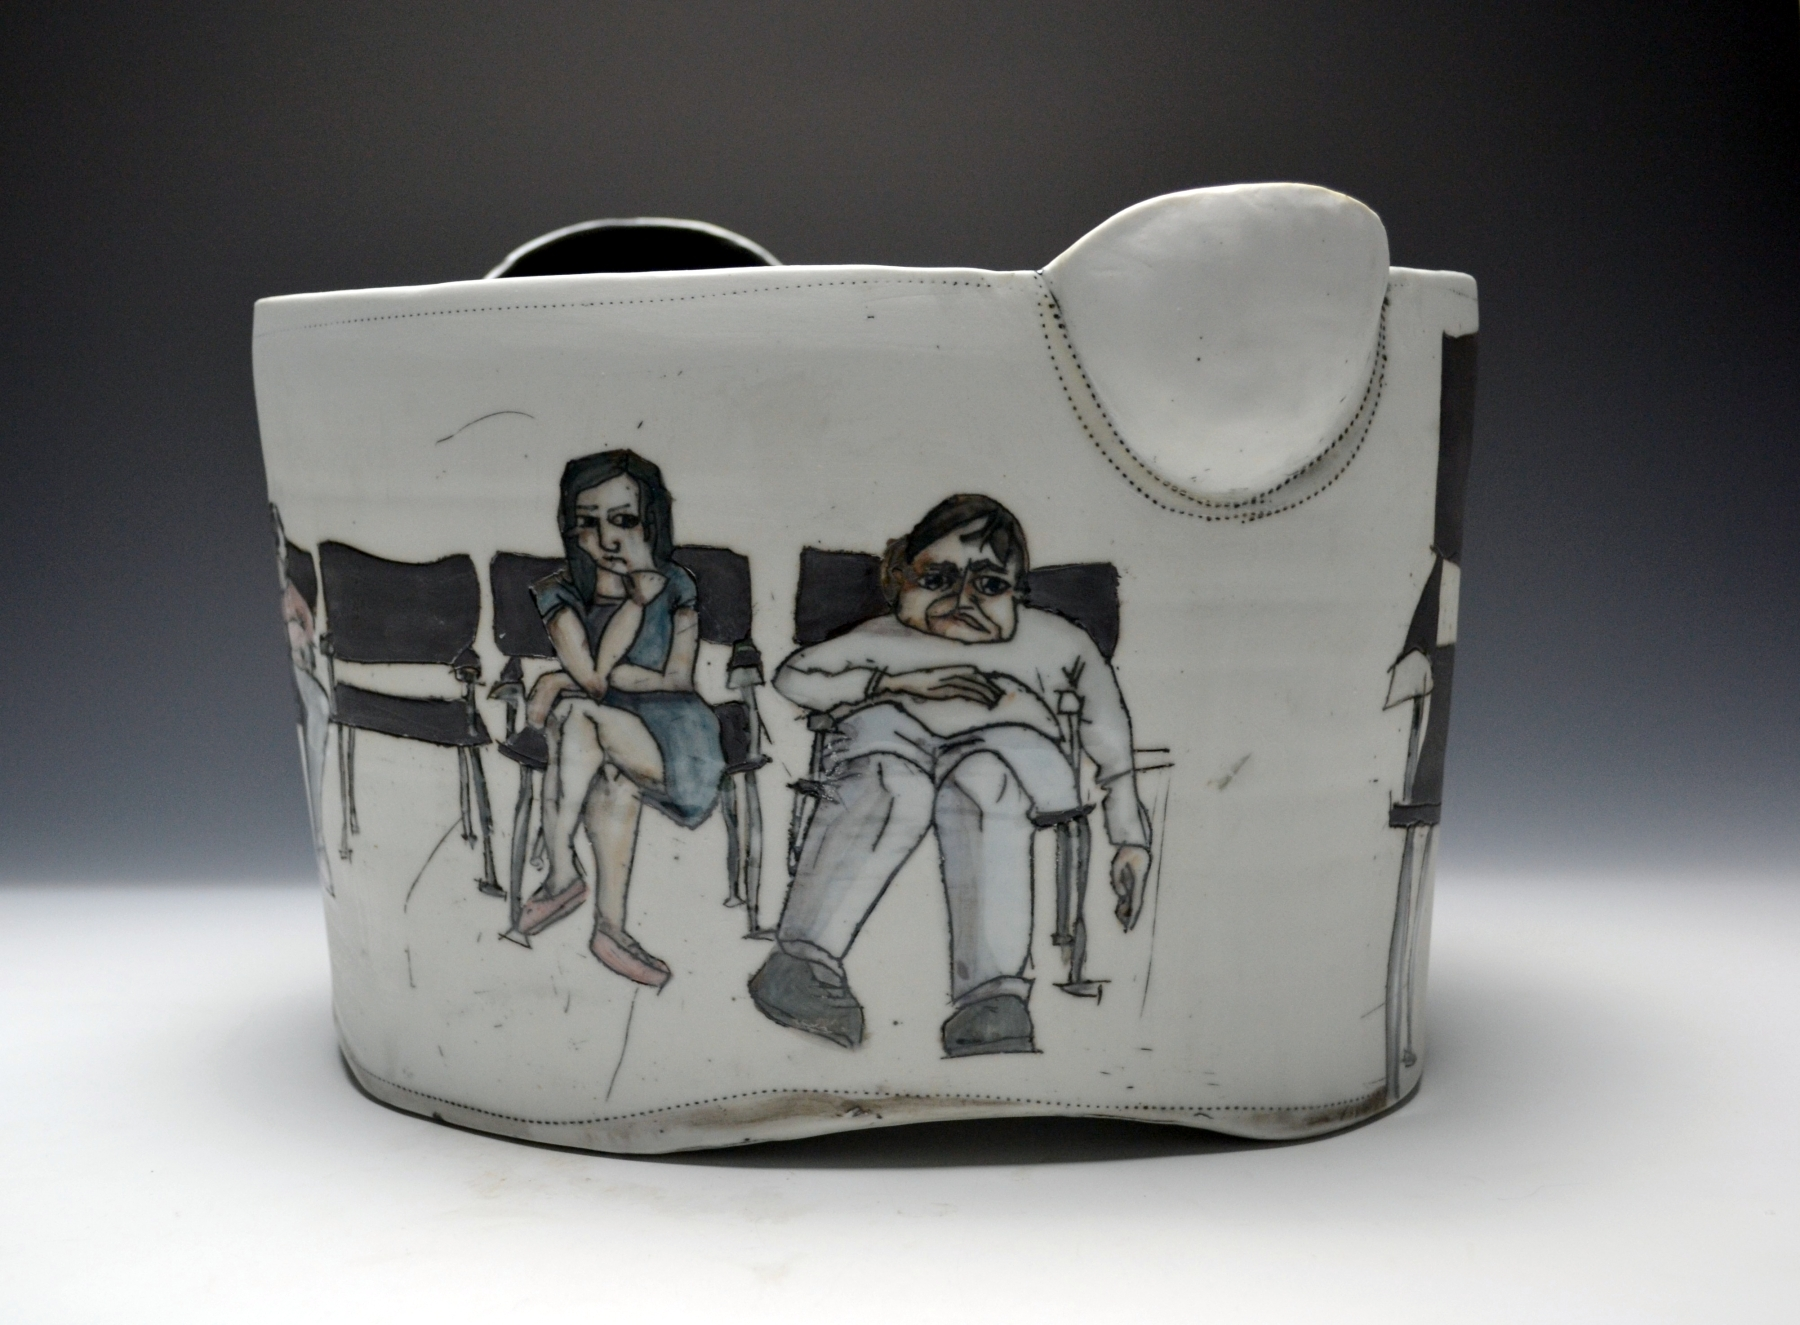 2014 Portfolio Autumn Higgins Ceramics